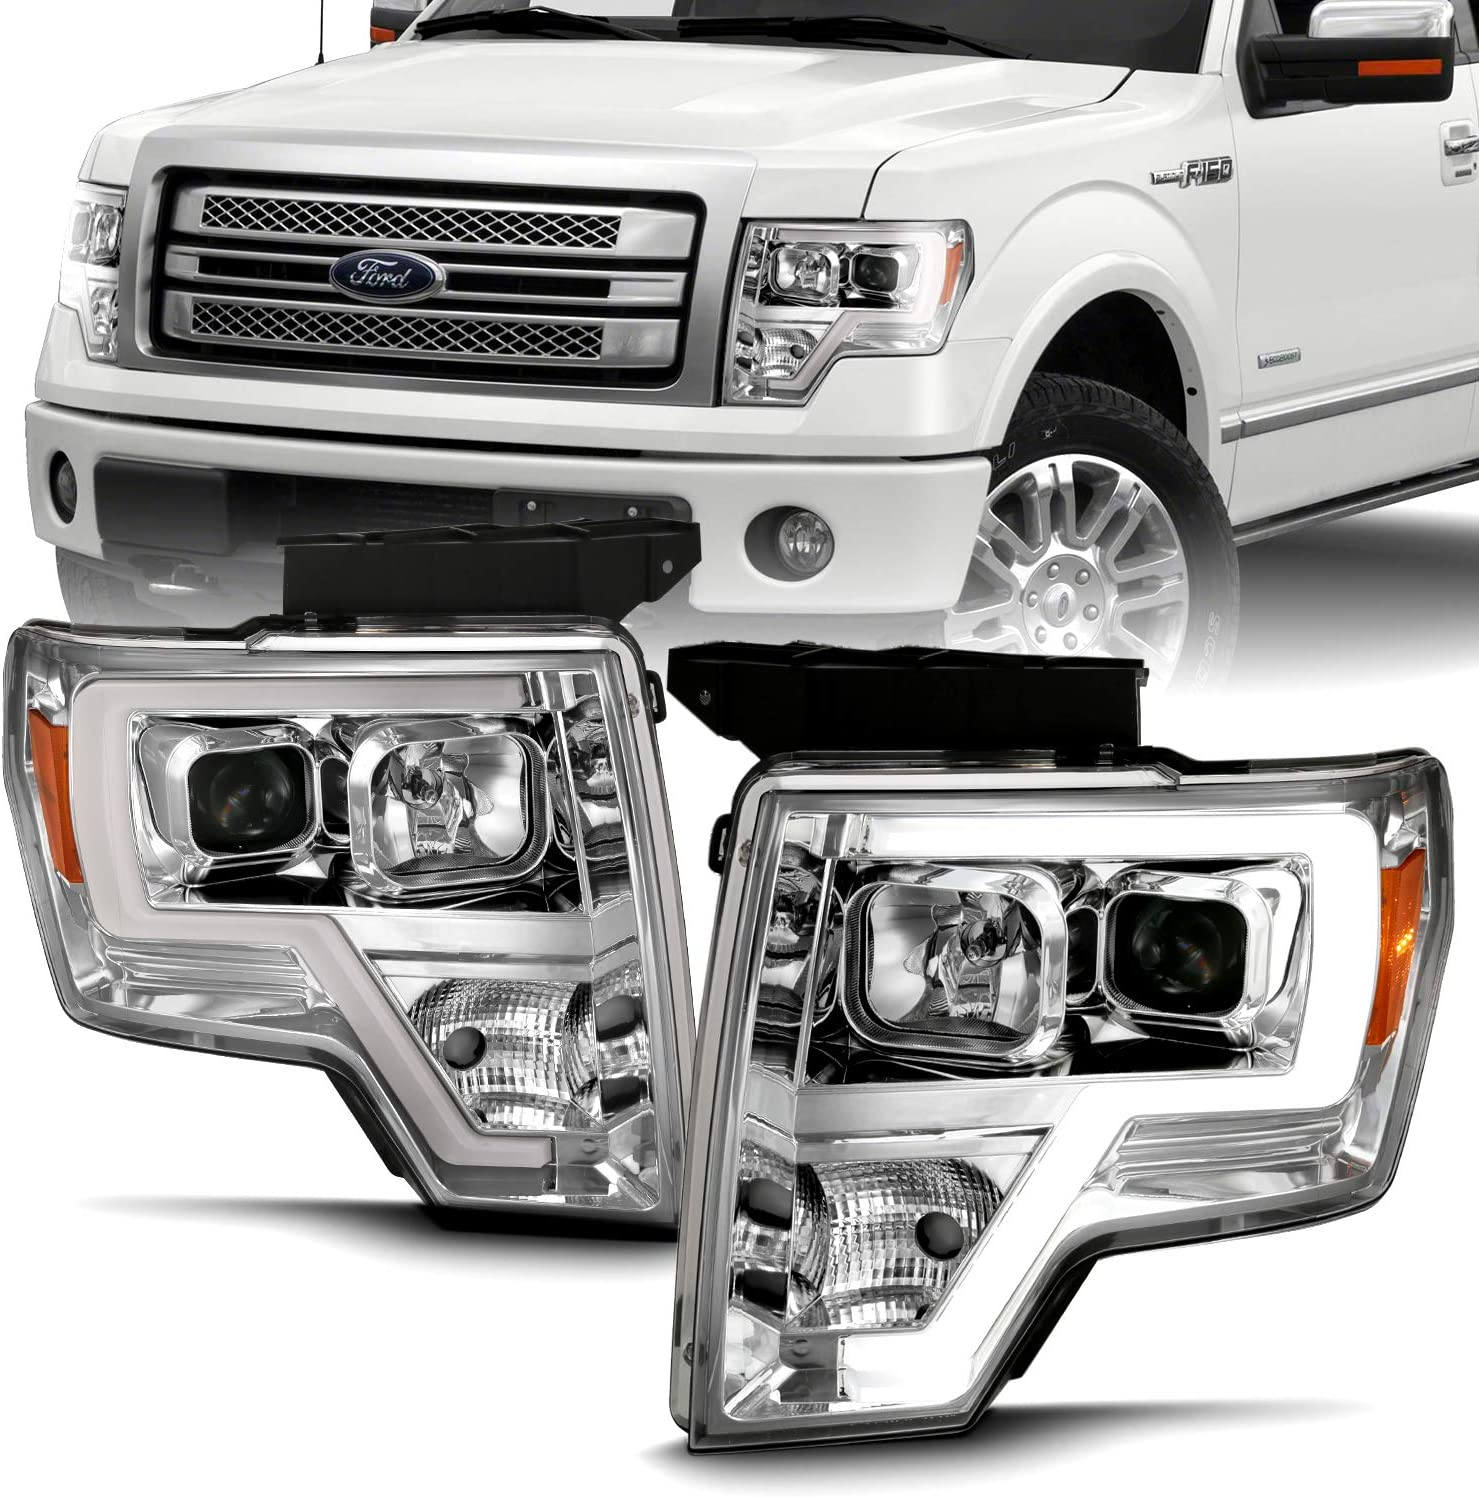 Amazon Com Amerilite Chrome Projector Headlights Led Bar Set For Ford F150 Pair High Low Beam Bulb Included Automotive